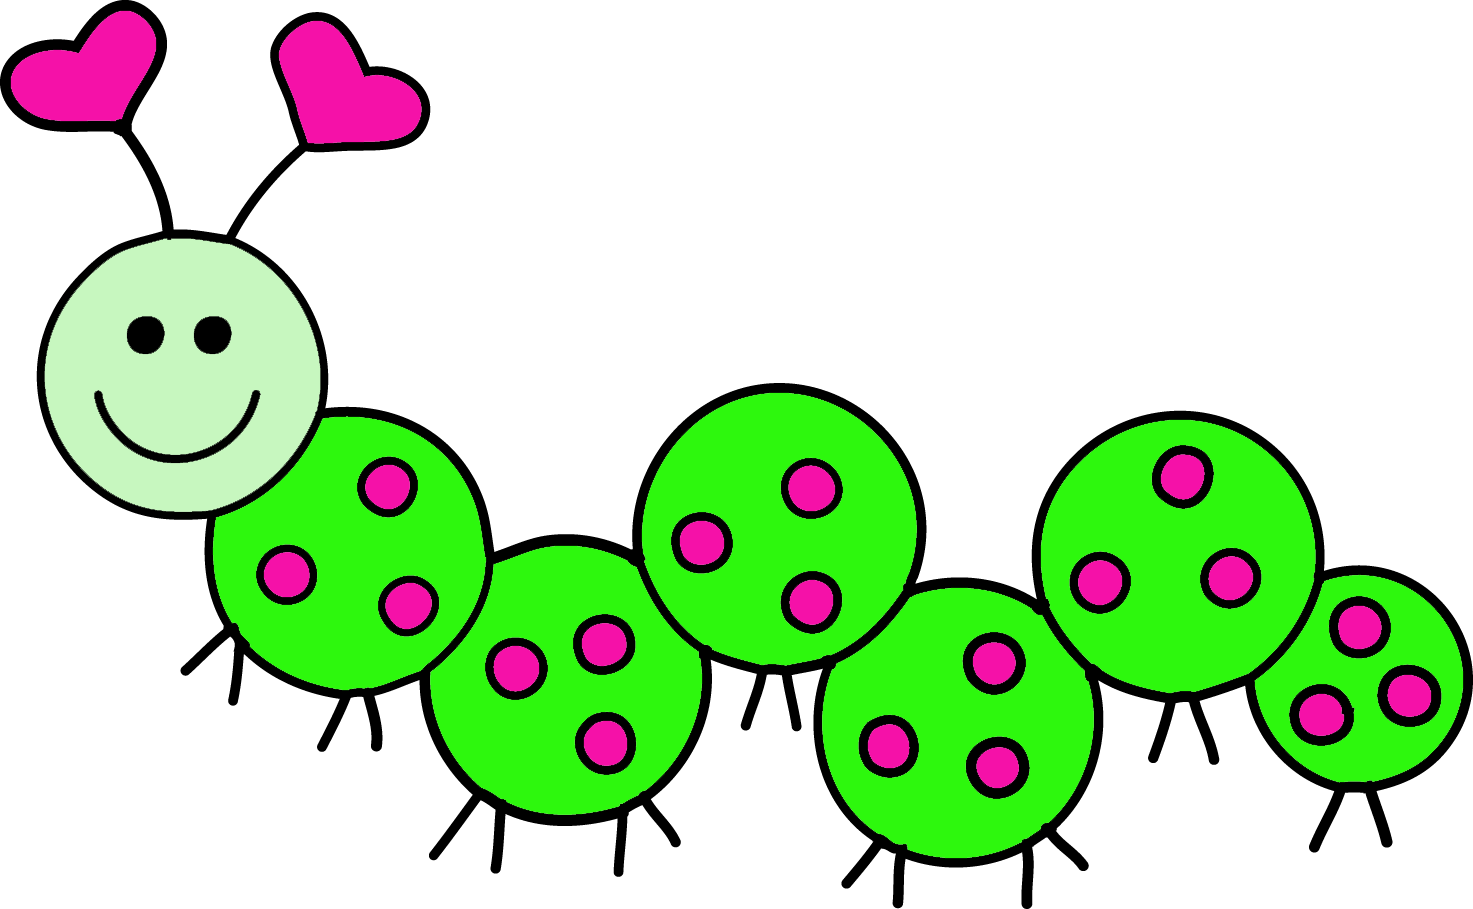 caterpillar clipart-caterpillar clipart-6